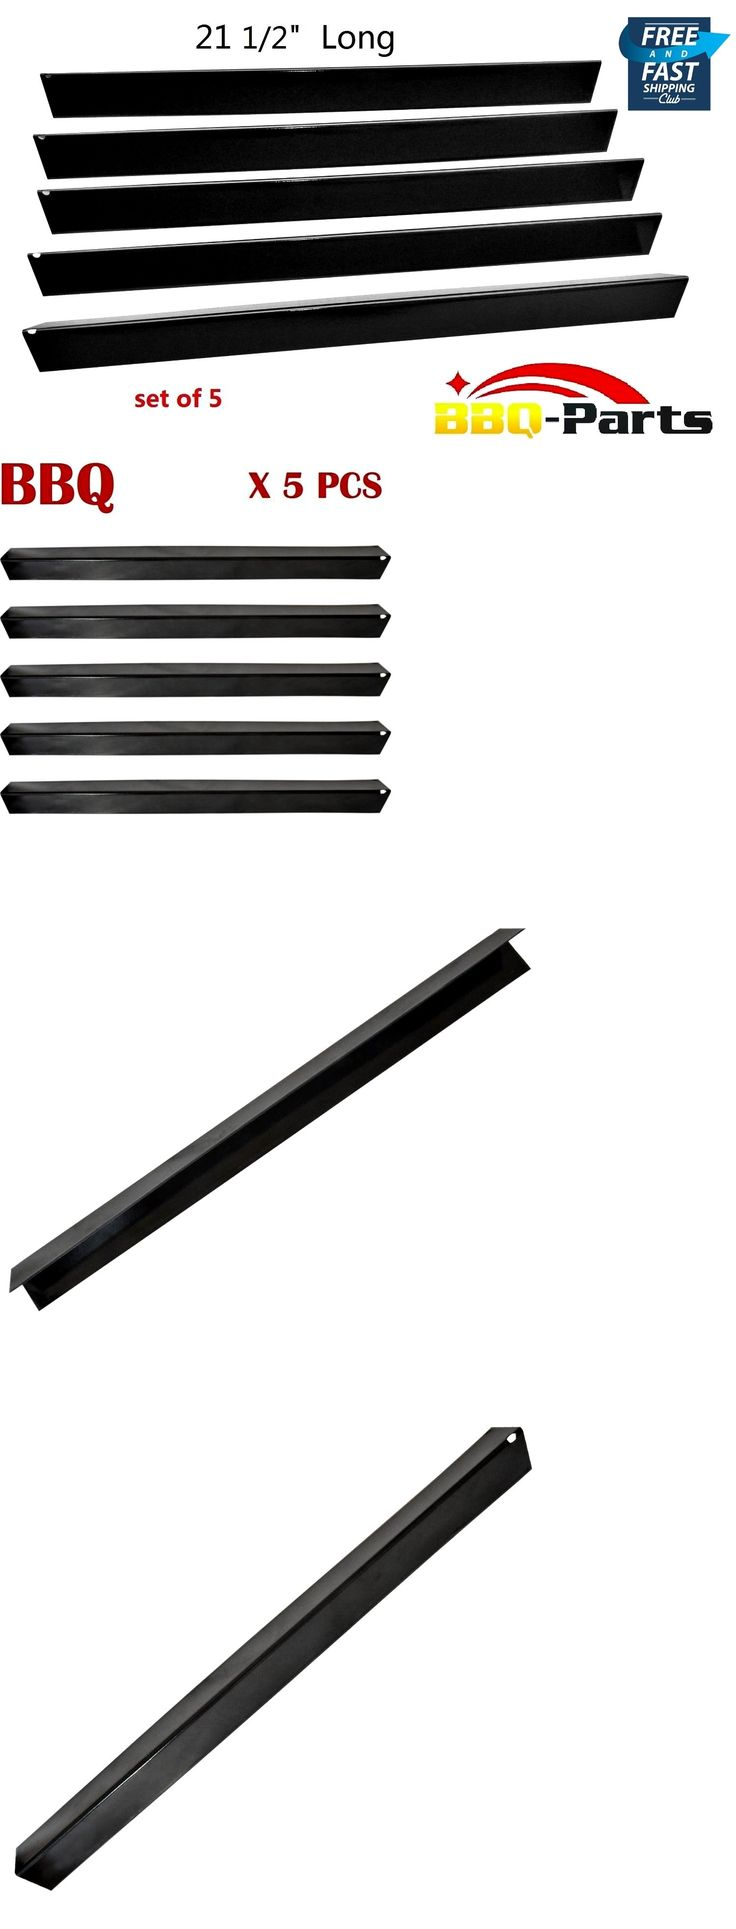 BBQ and Grill Replacement Parts 177018: Bbq Gas Grill Parts For Weber Genesis Spirit Porcelain Steel Flavorizer Ba 5 Pcs -> BUY IT NOW ONLY: $33.92 on eBay!